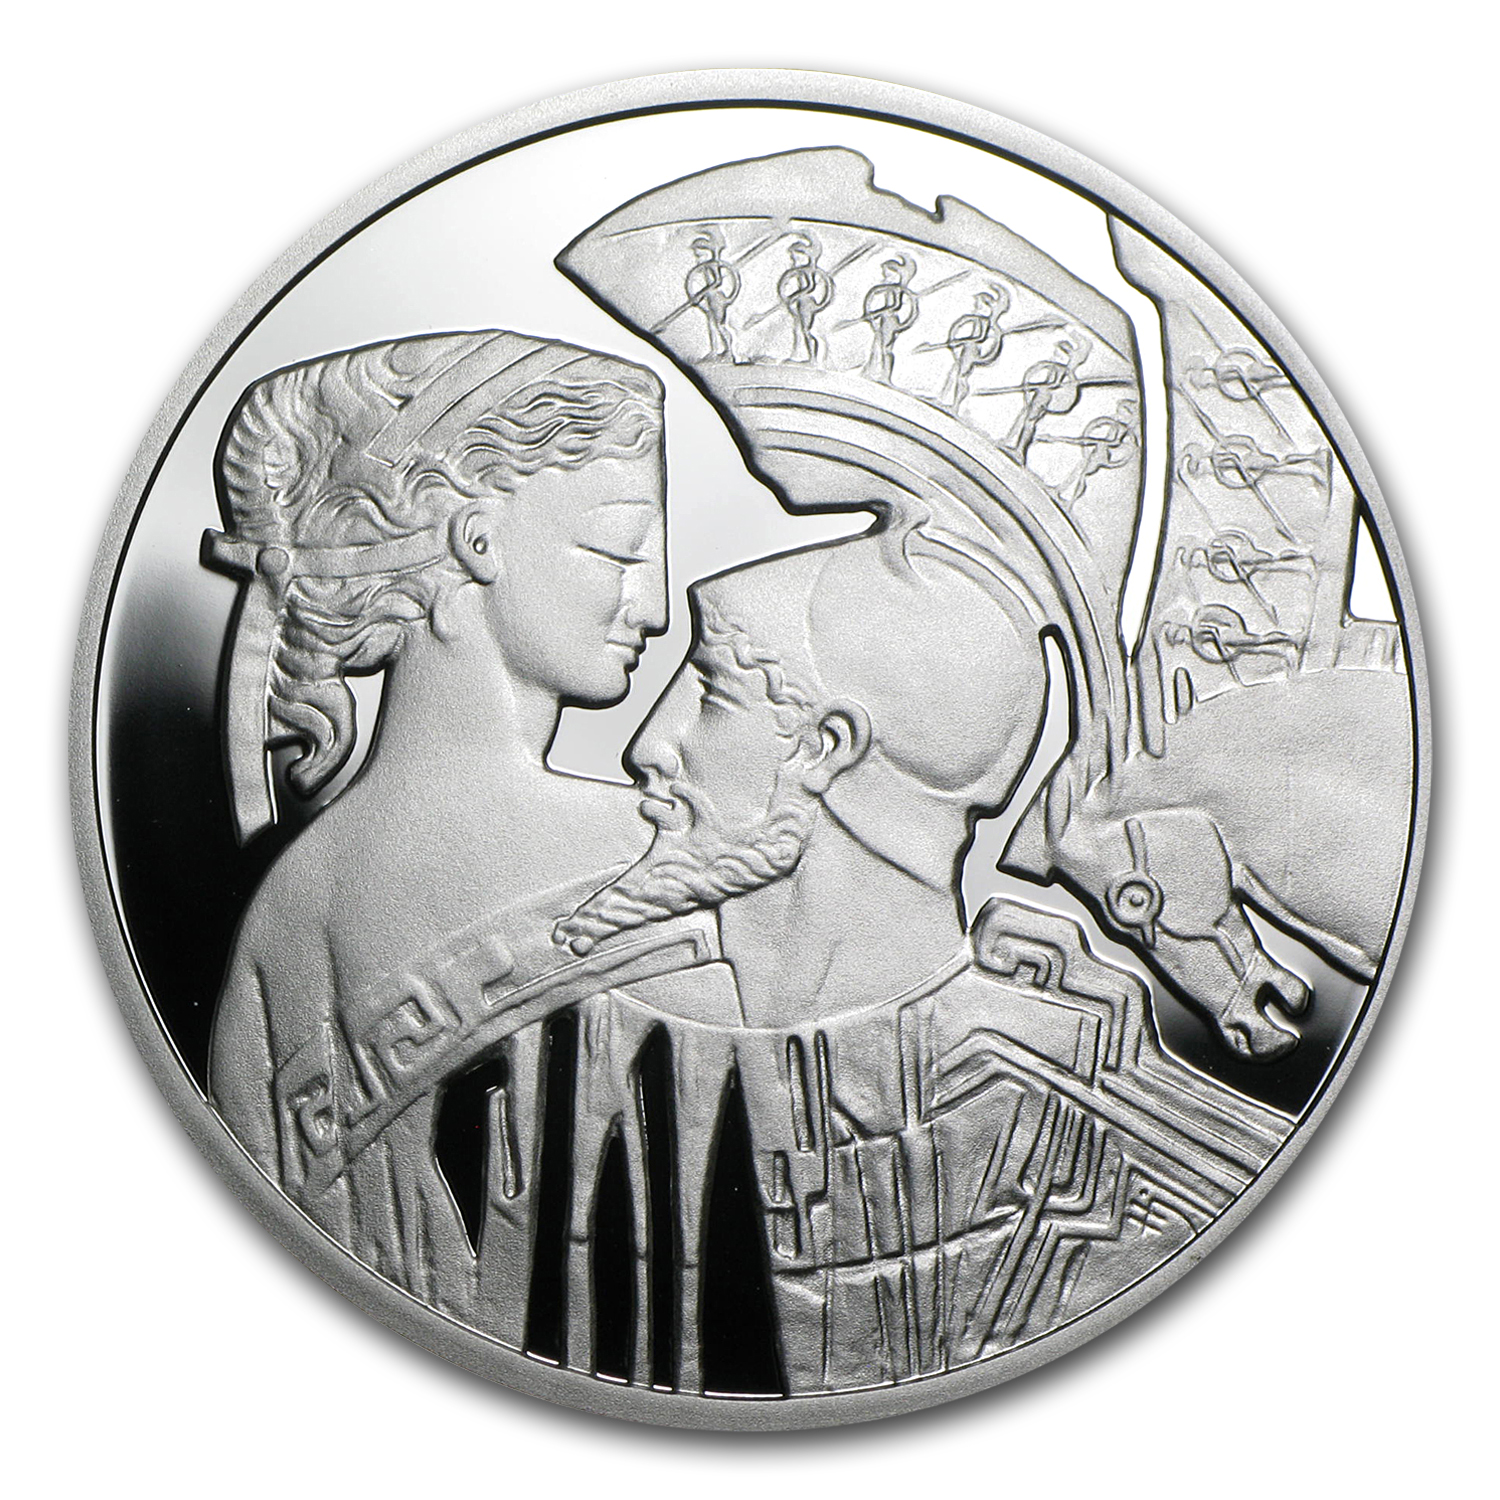 2010 Niue Proof Silver $1 Famous Love Stories Paris and Helen